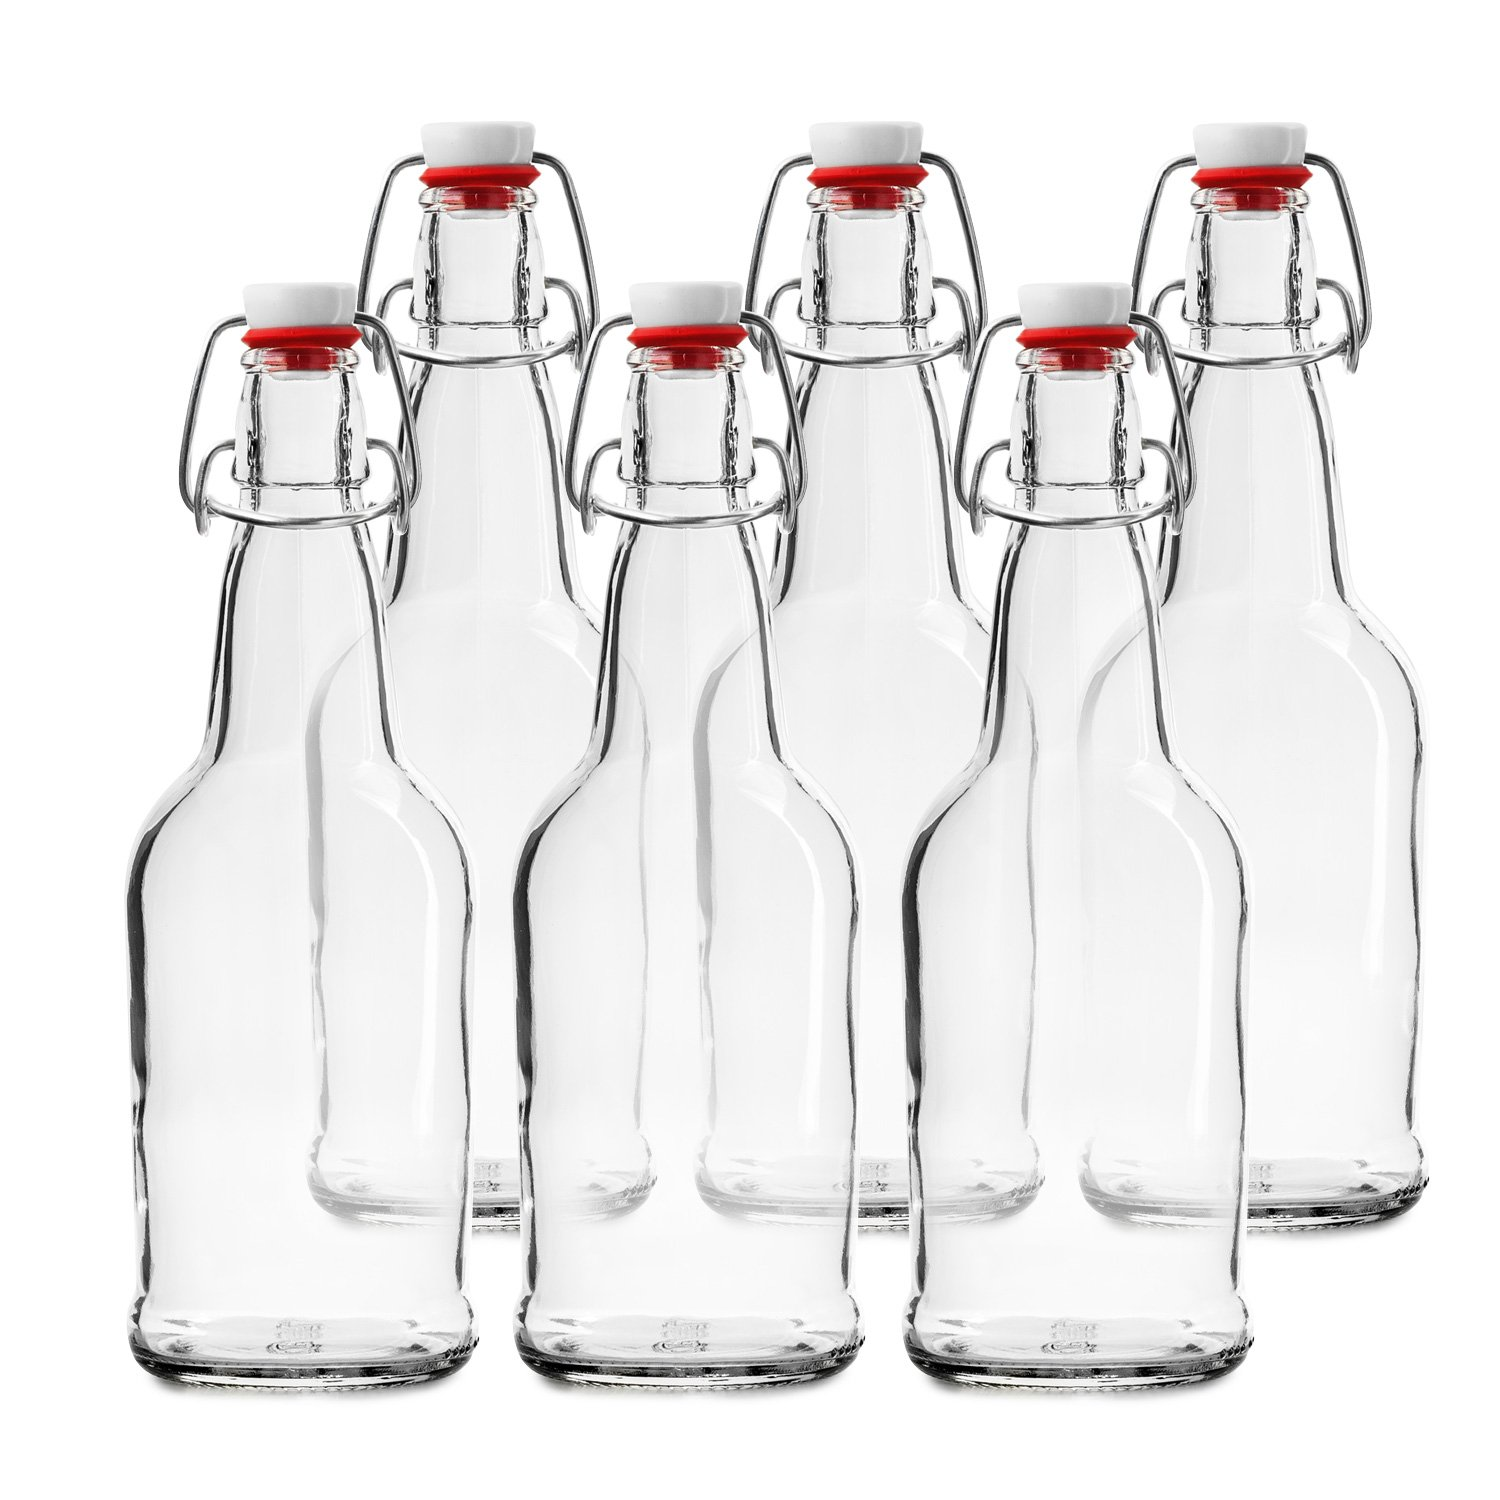 Chef's Star CASE OF 6-16 oz. EASY CAP Beer Bottles - CLEAR by Chef's Star